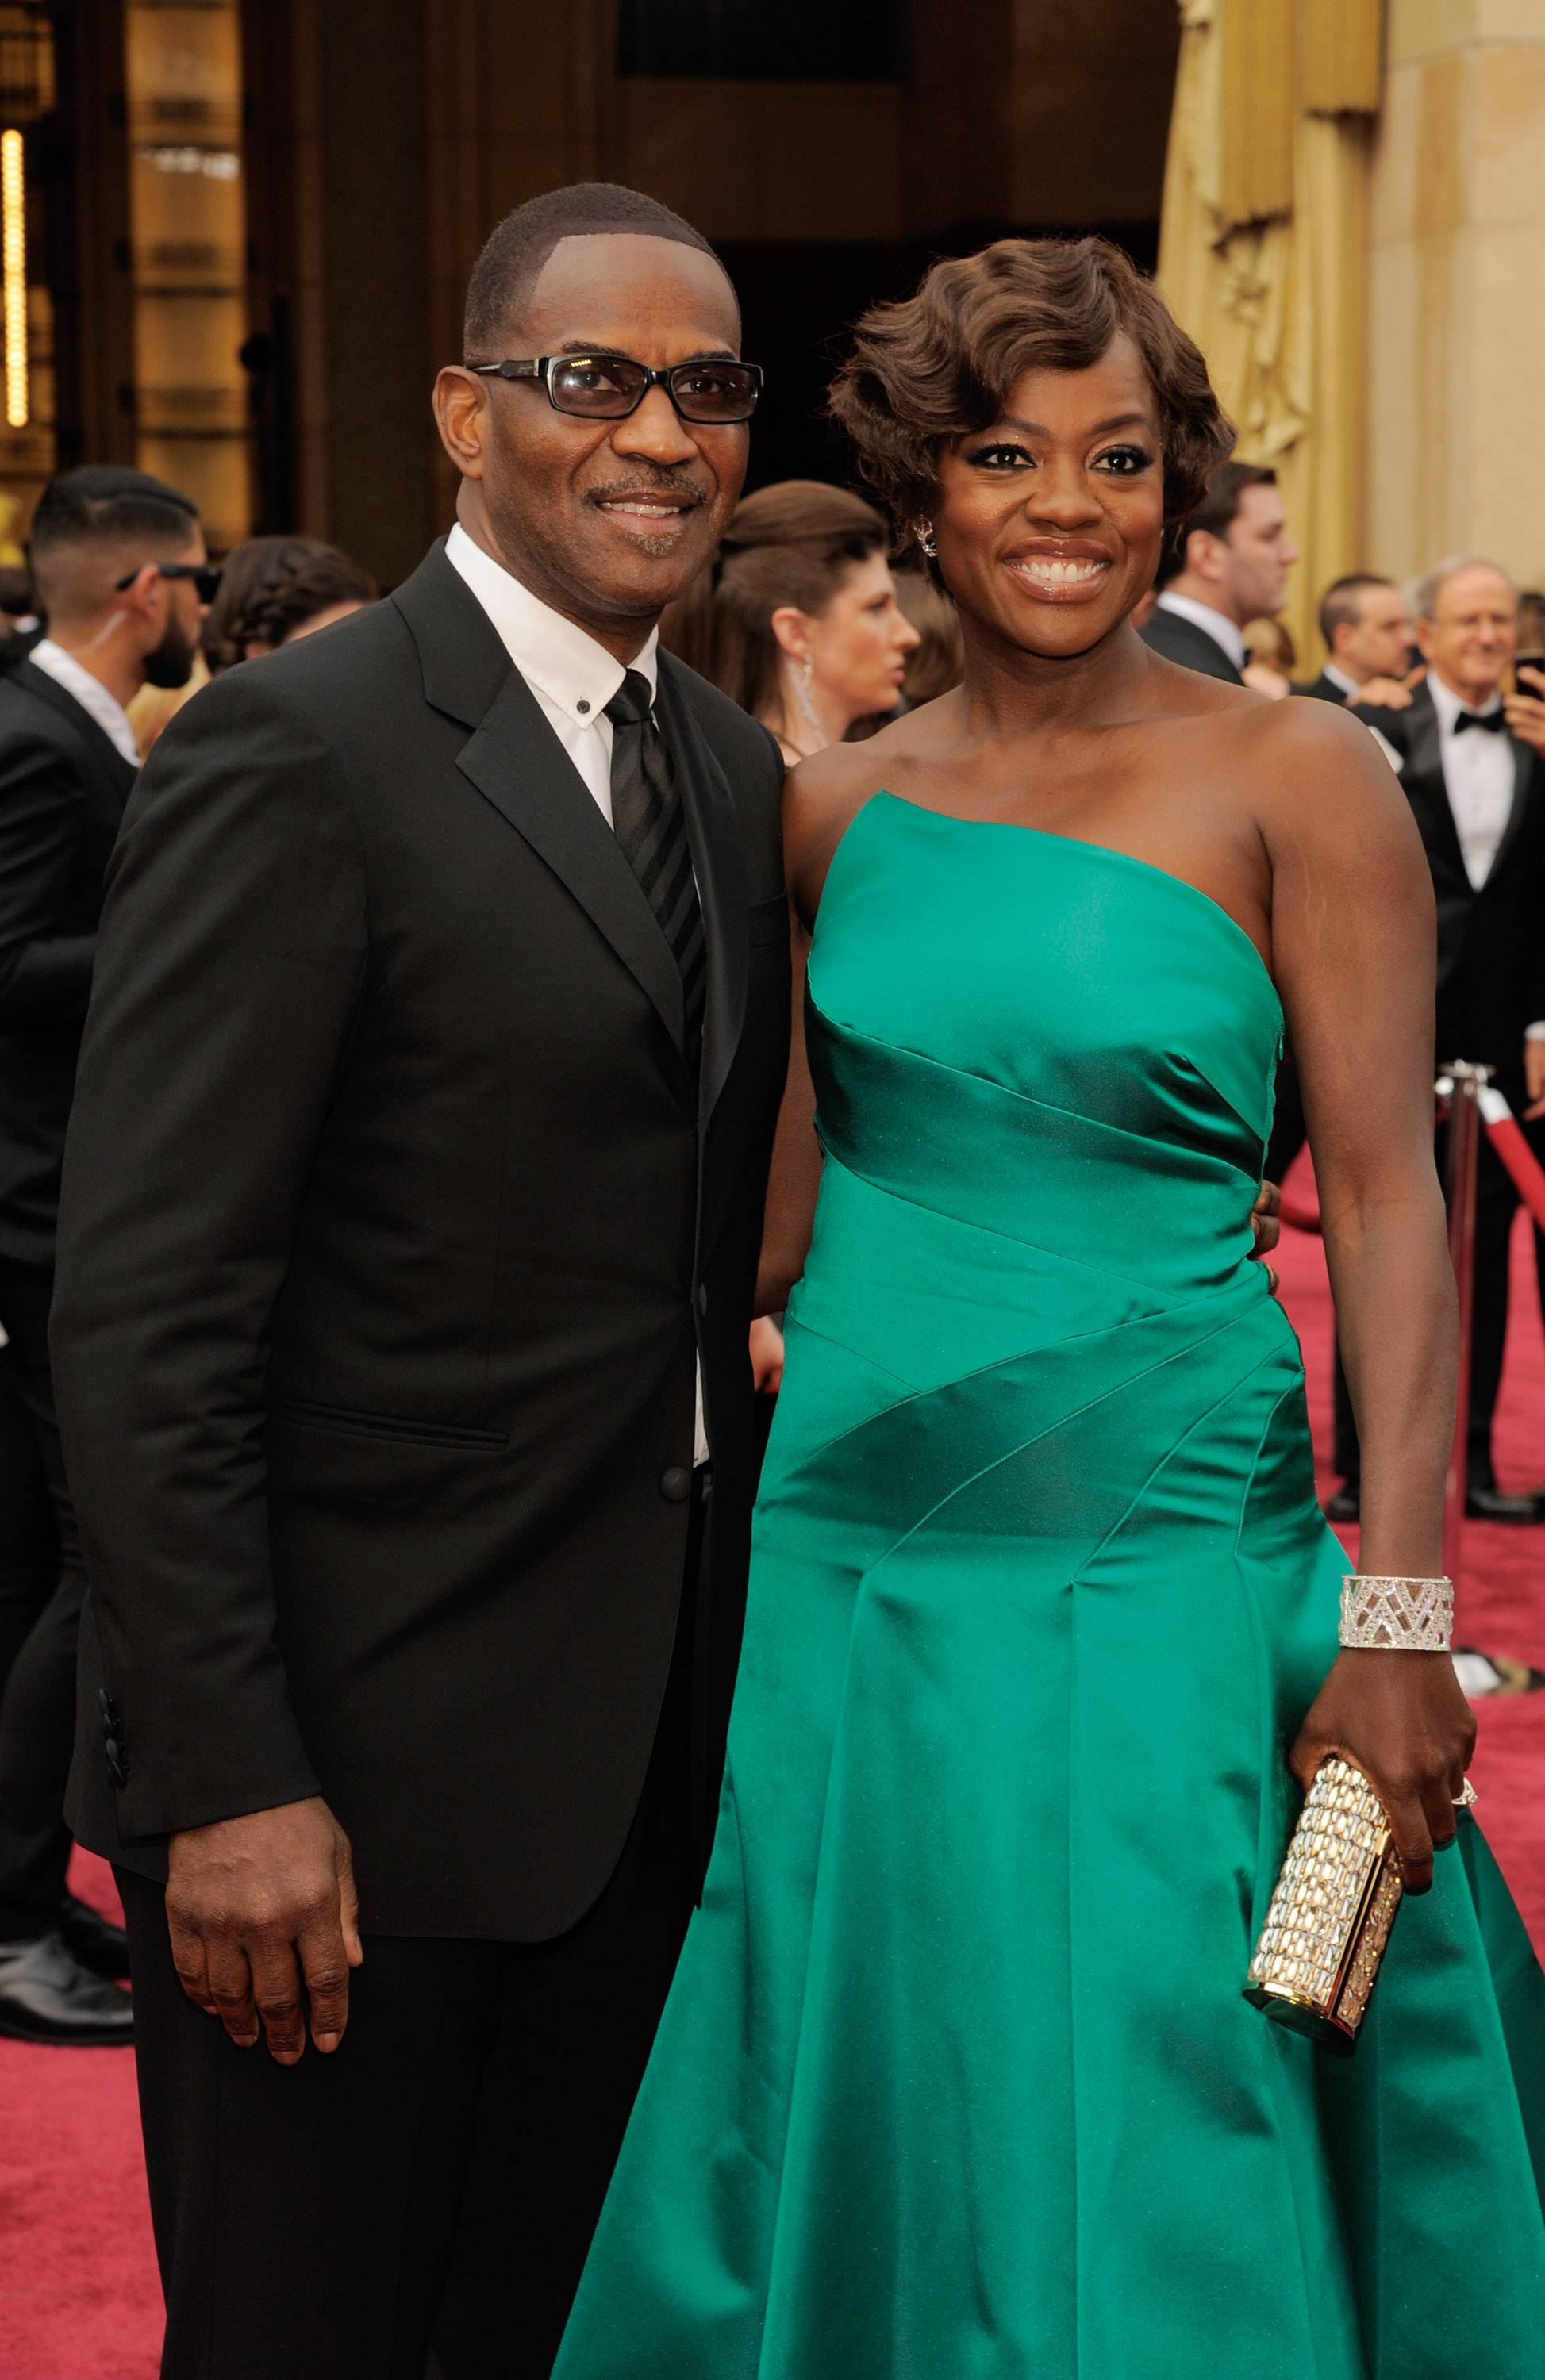 Julius Tennon, left, and Viola Davis arrive at the Oscars on Sunday at the Dolby Theatre in Los Angeles.